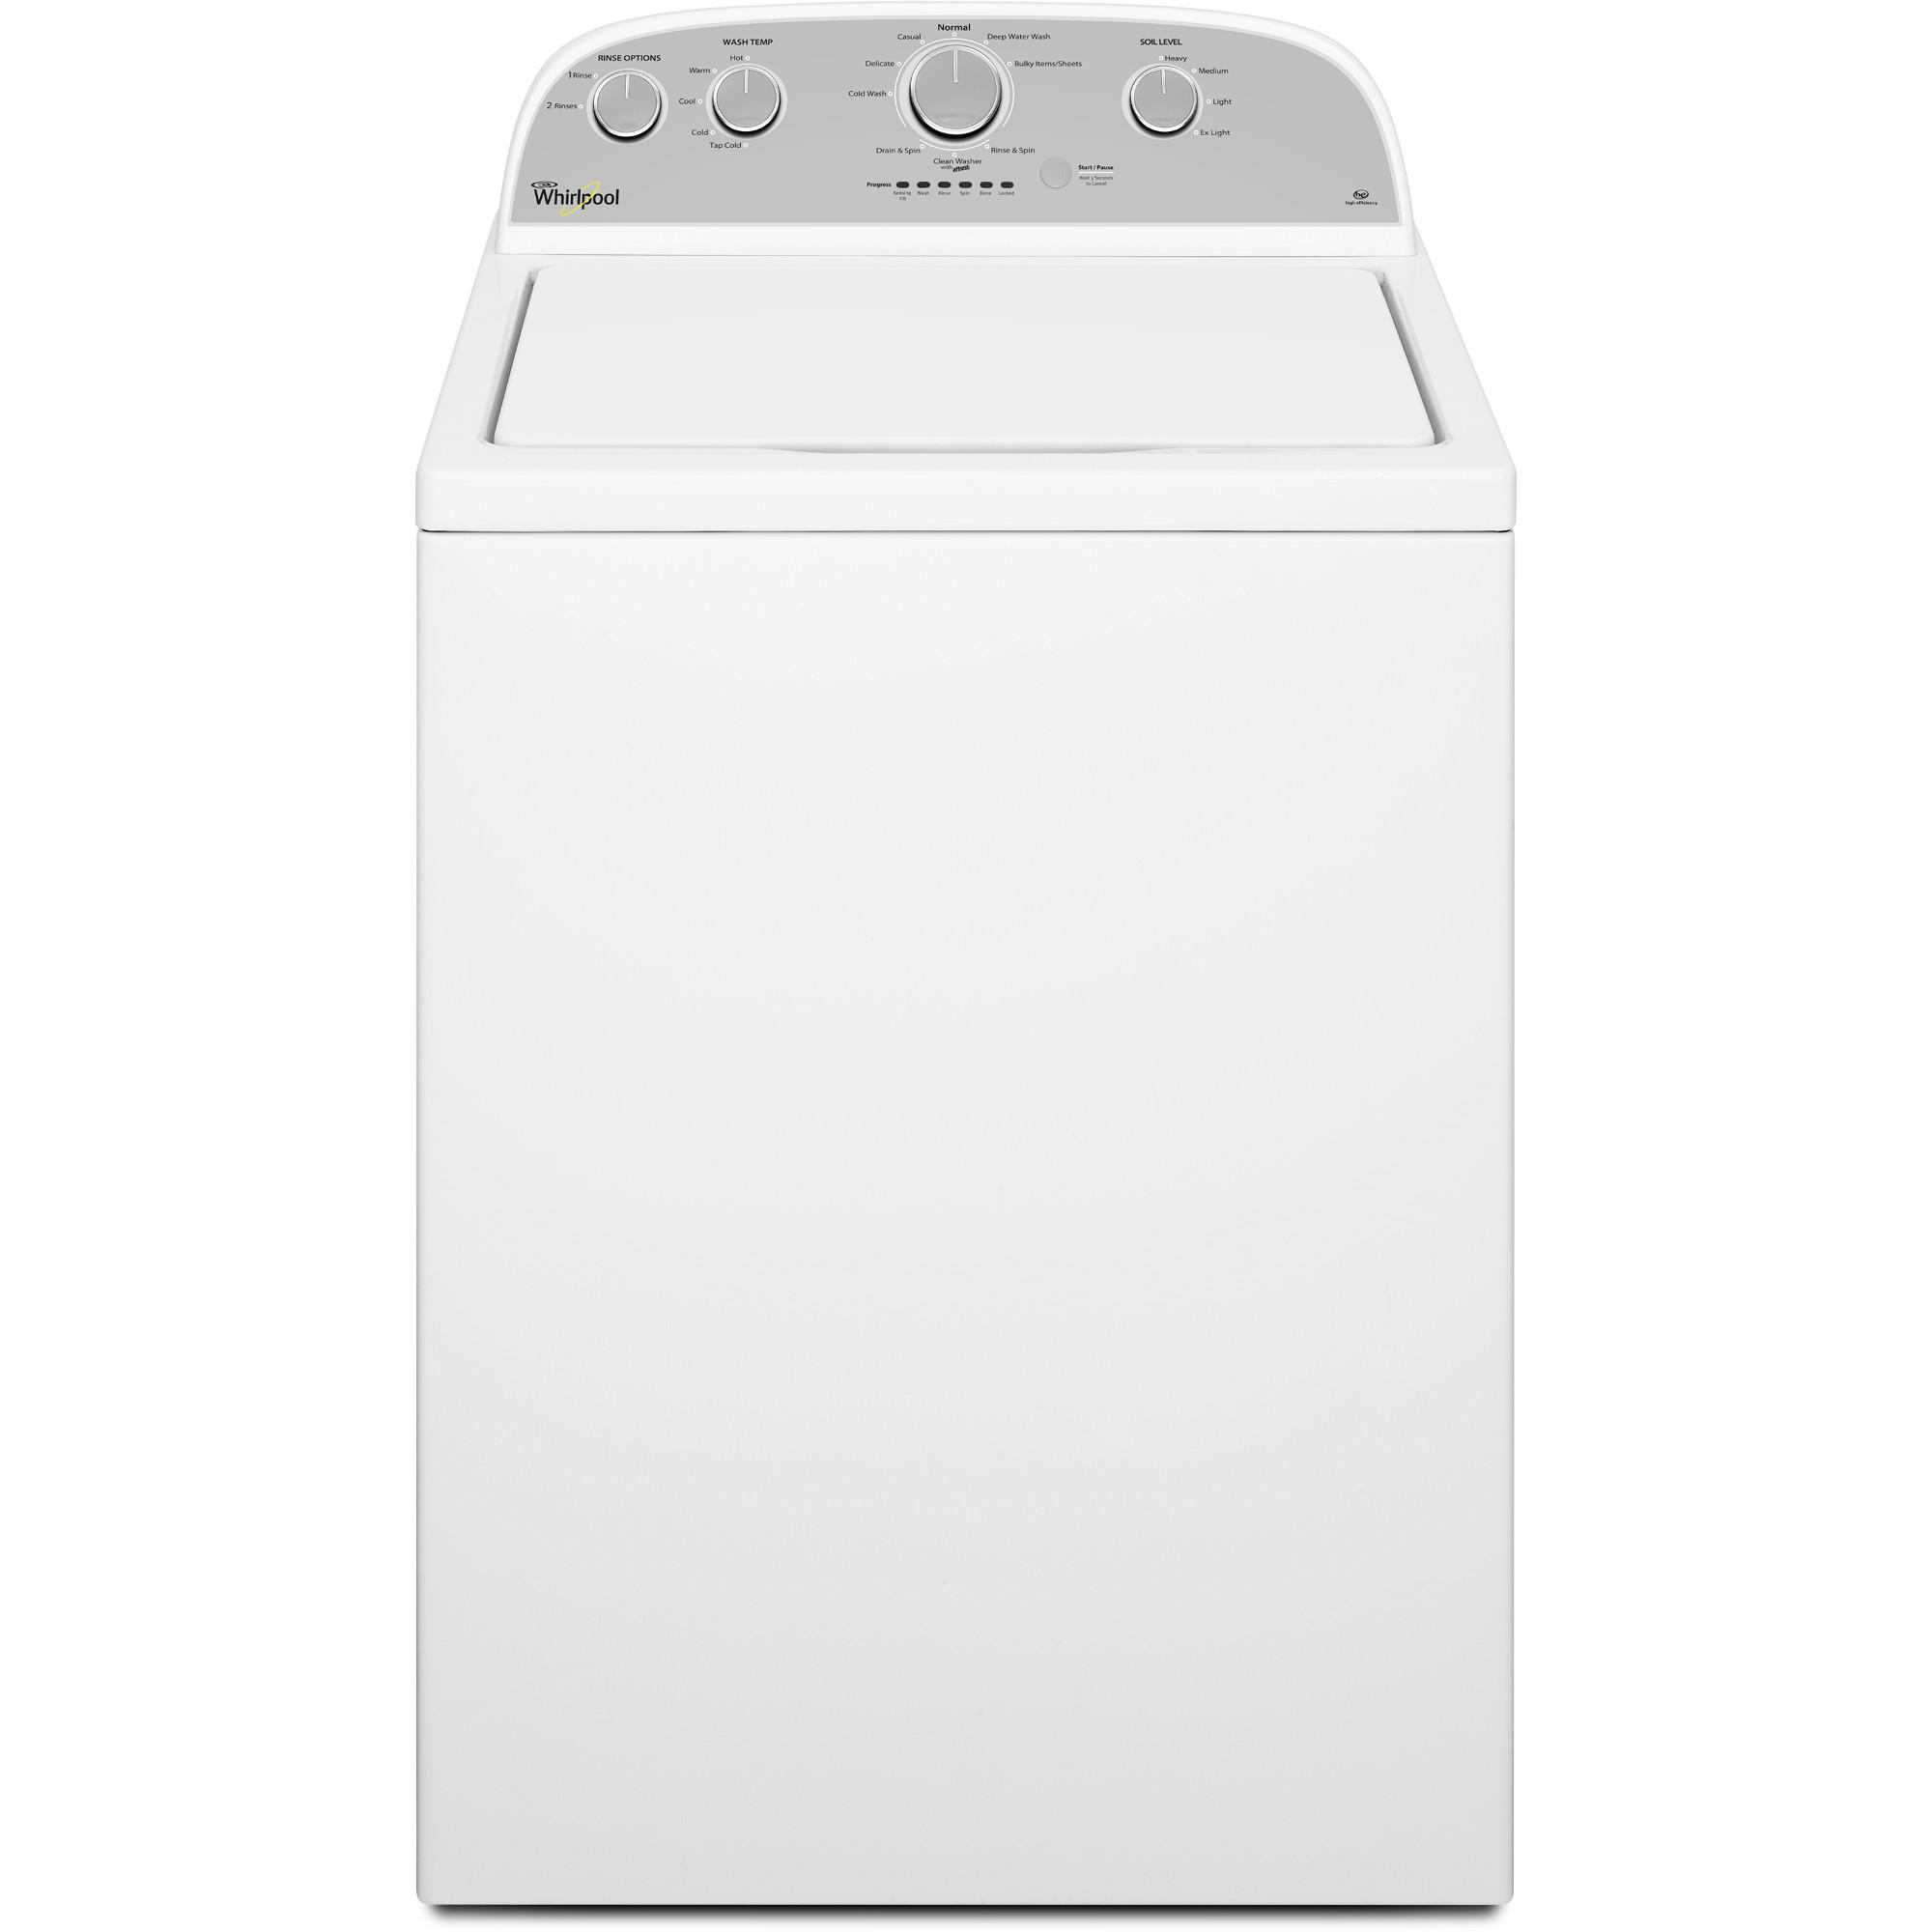 WHIRLPOOL� 3.5 CU. FT TOP LOAD WASHING MACHINE, WHITE, 9 WASH CYCLES